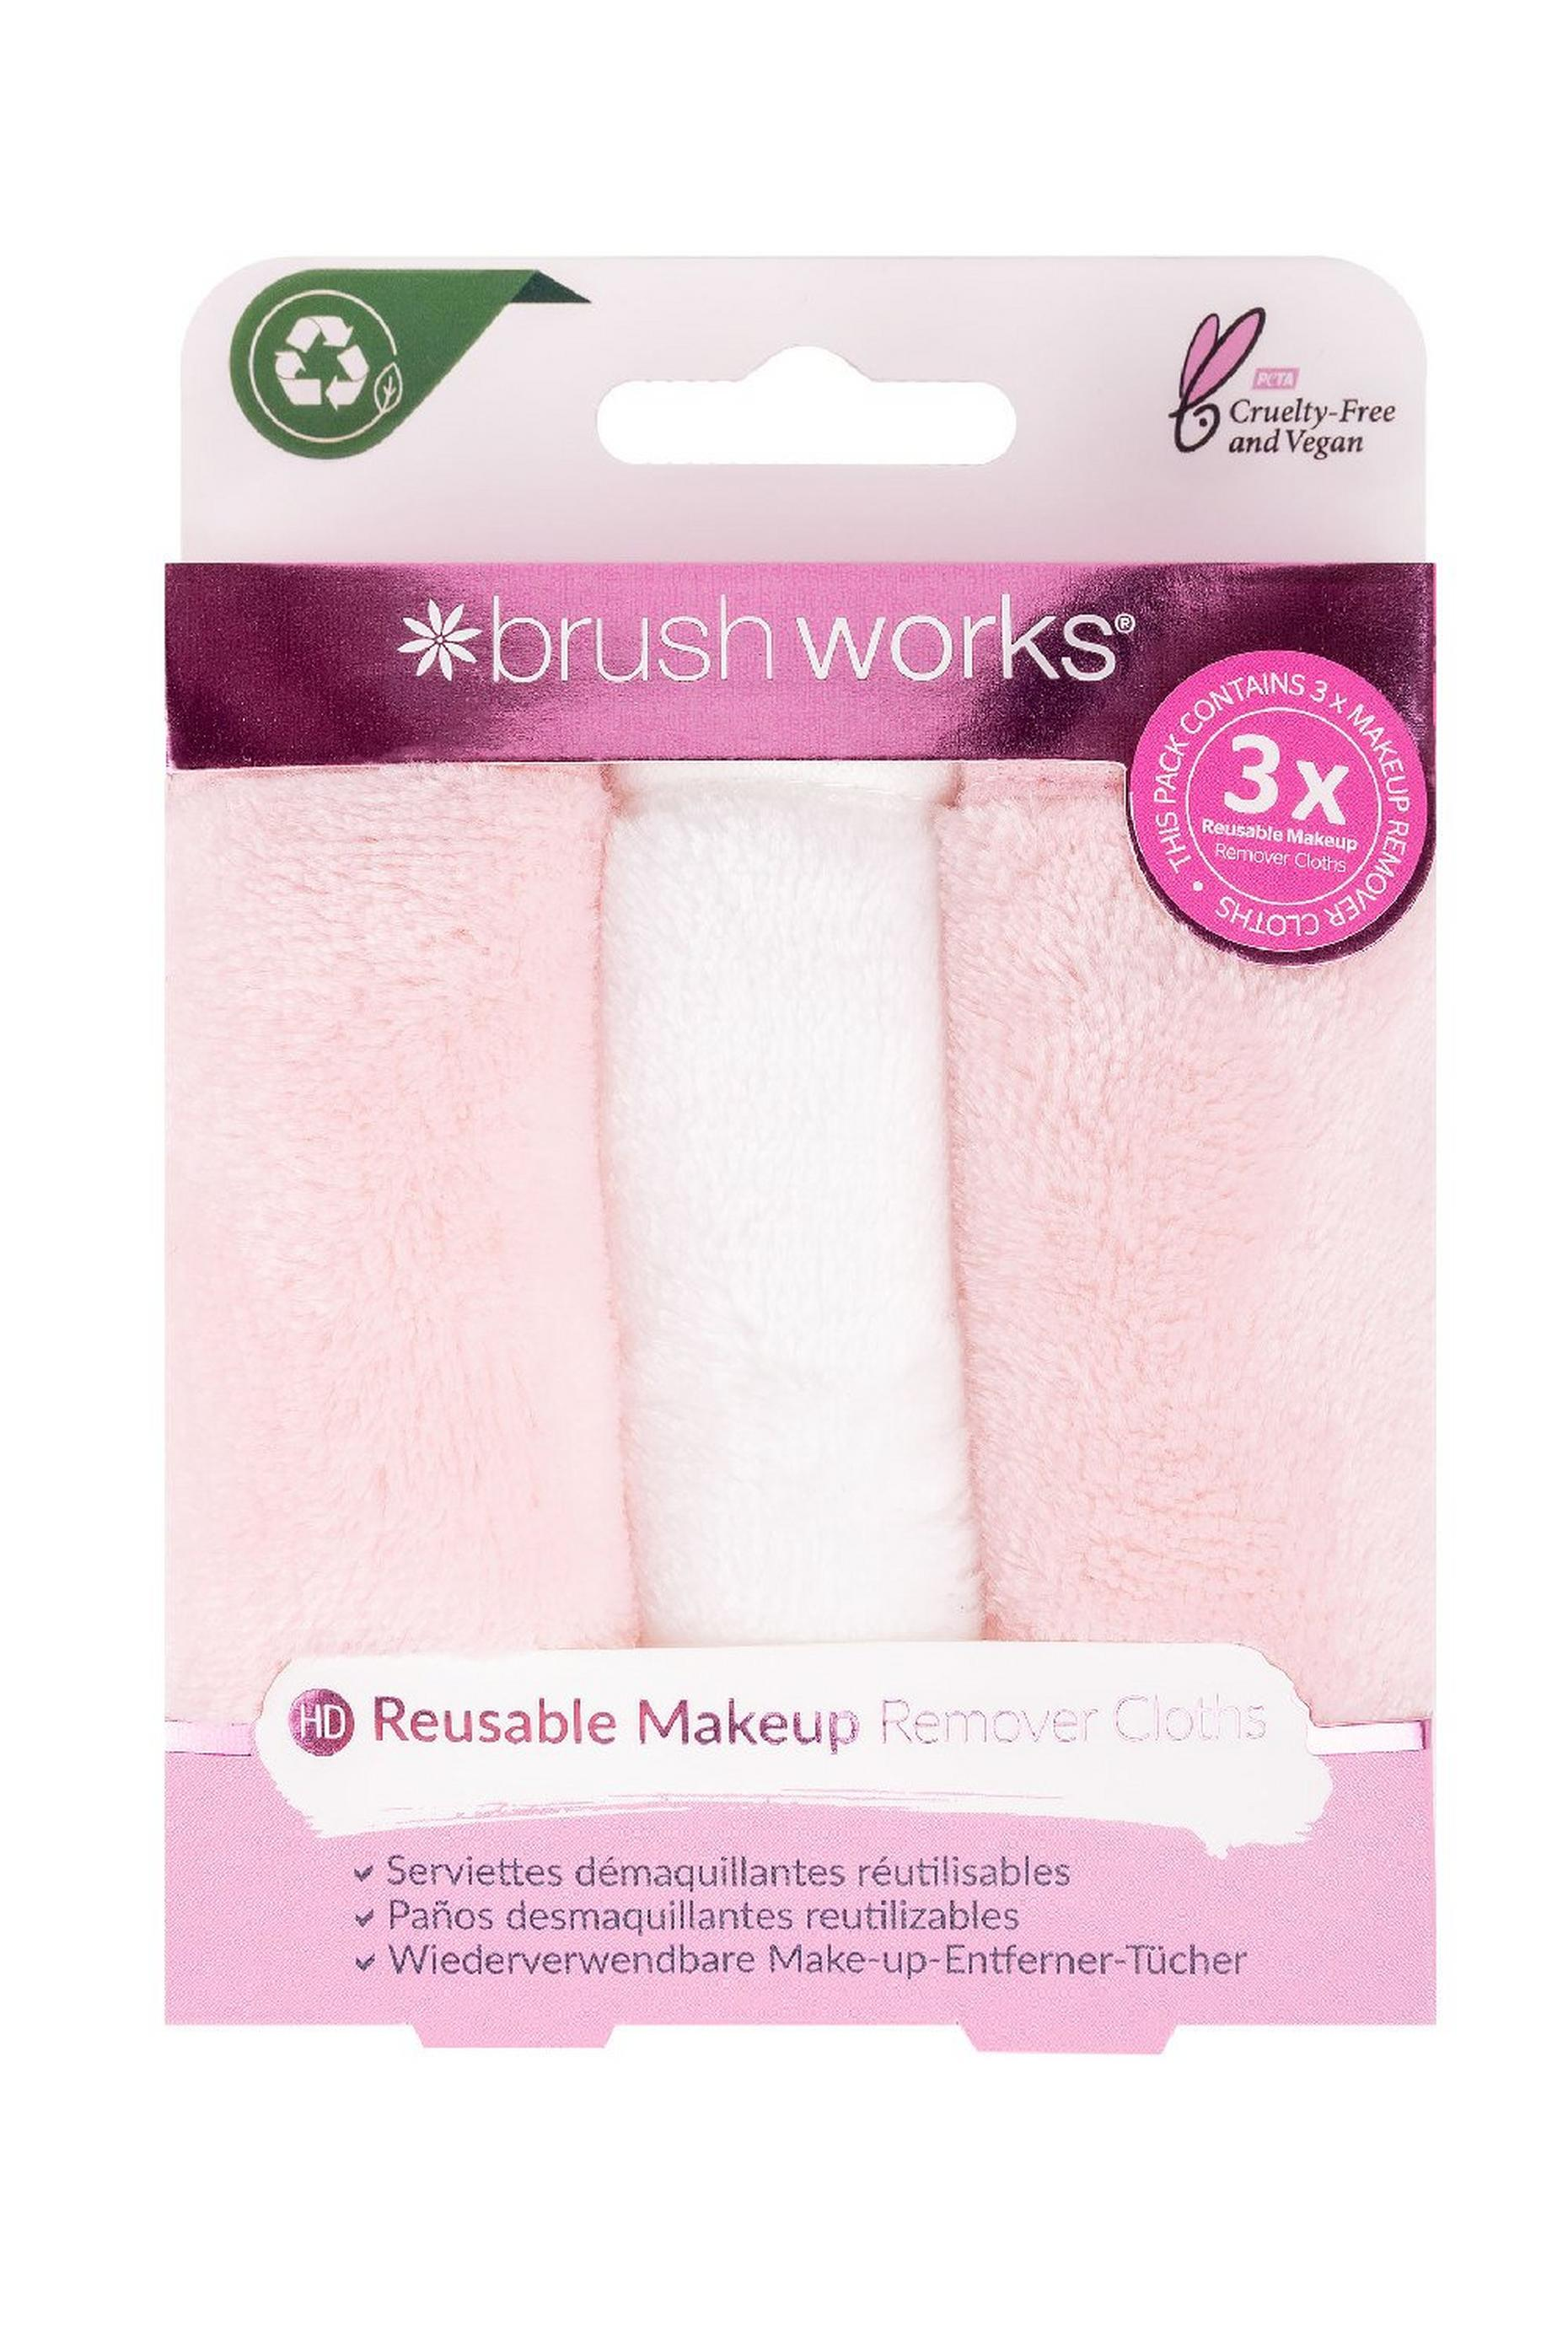 Brushworks Makeup Remover Cloths - 3 Pack